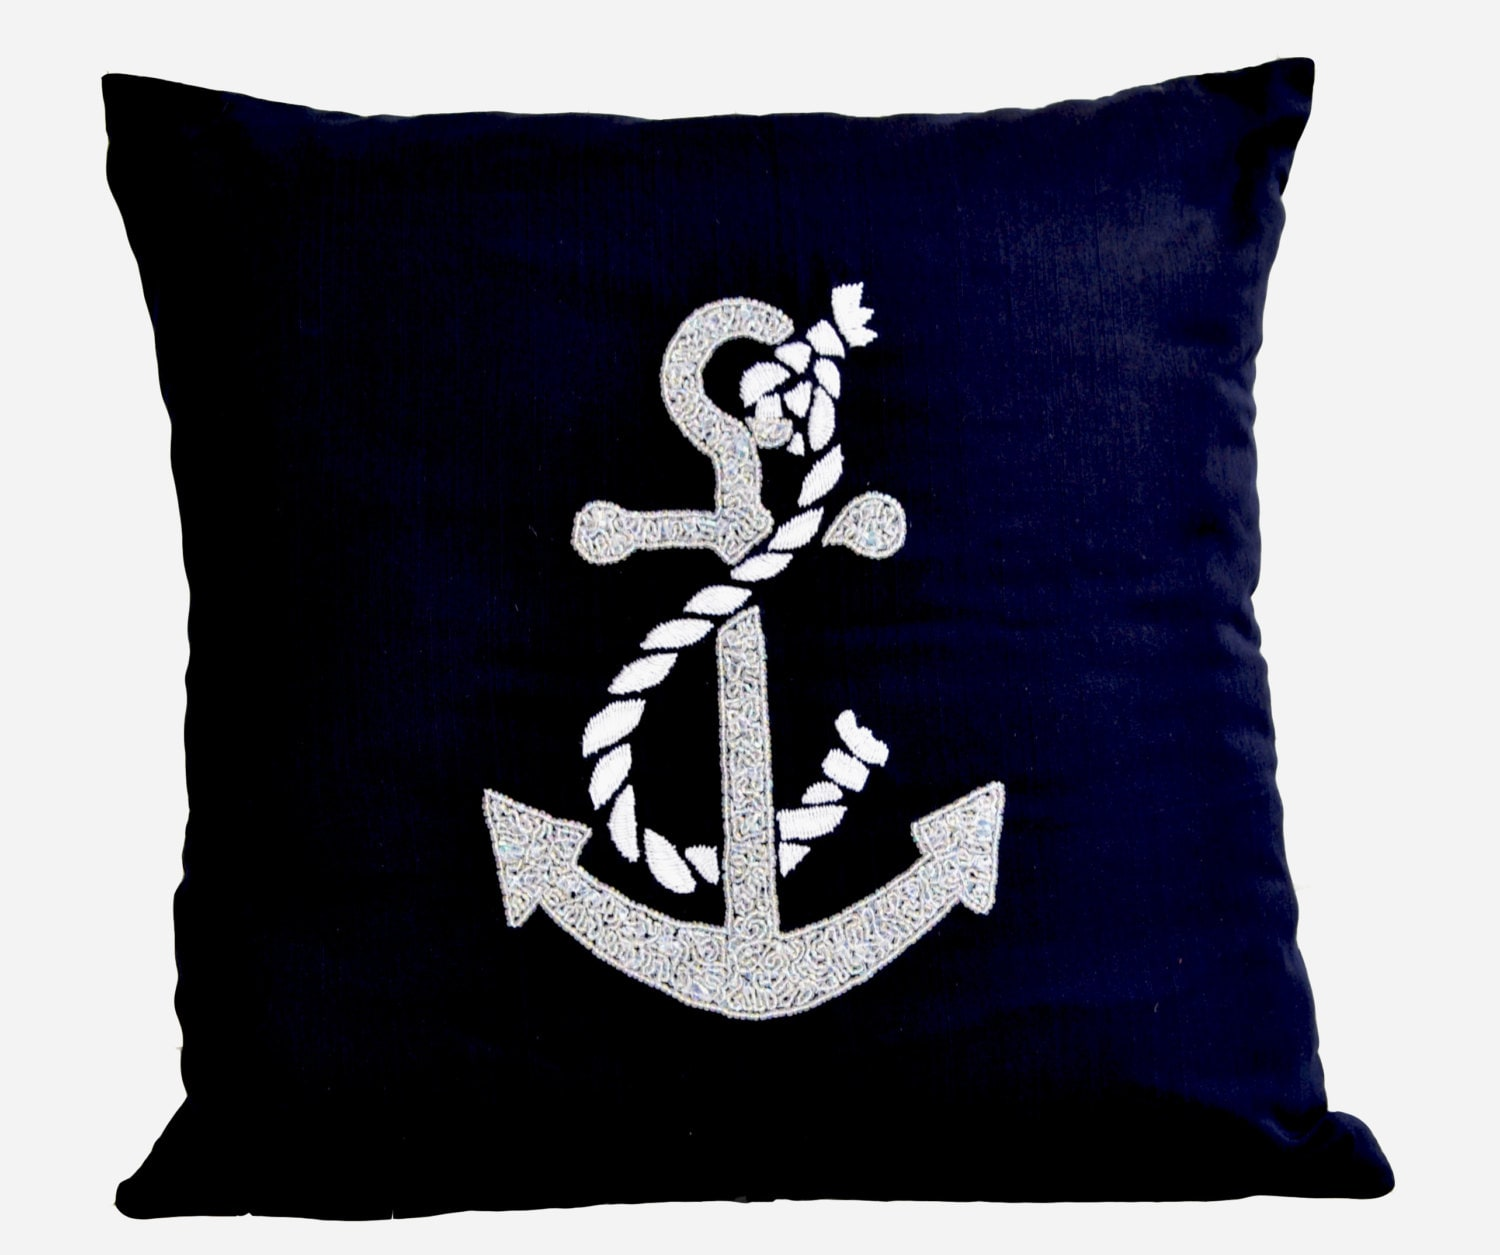 Anchor Decorative Throw Pillows Cushion Cover Nautical Ocean